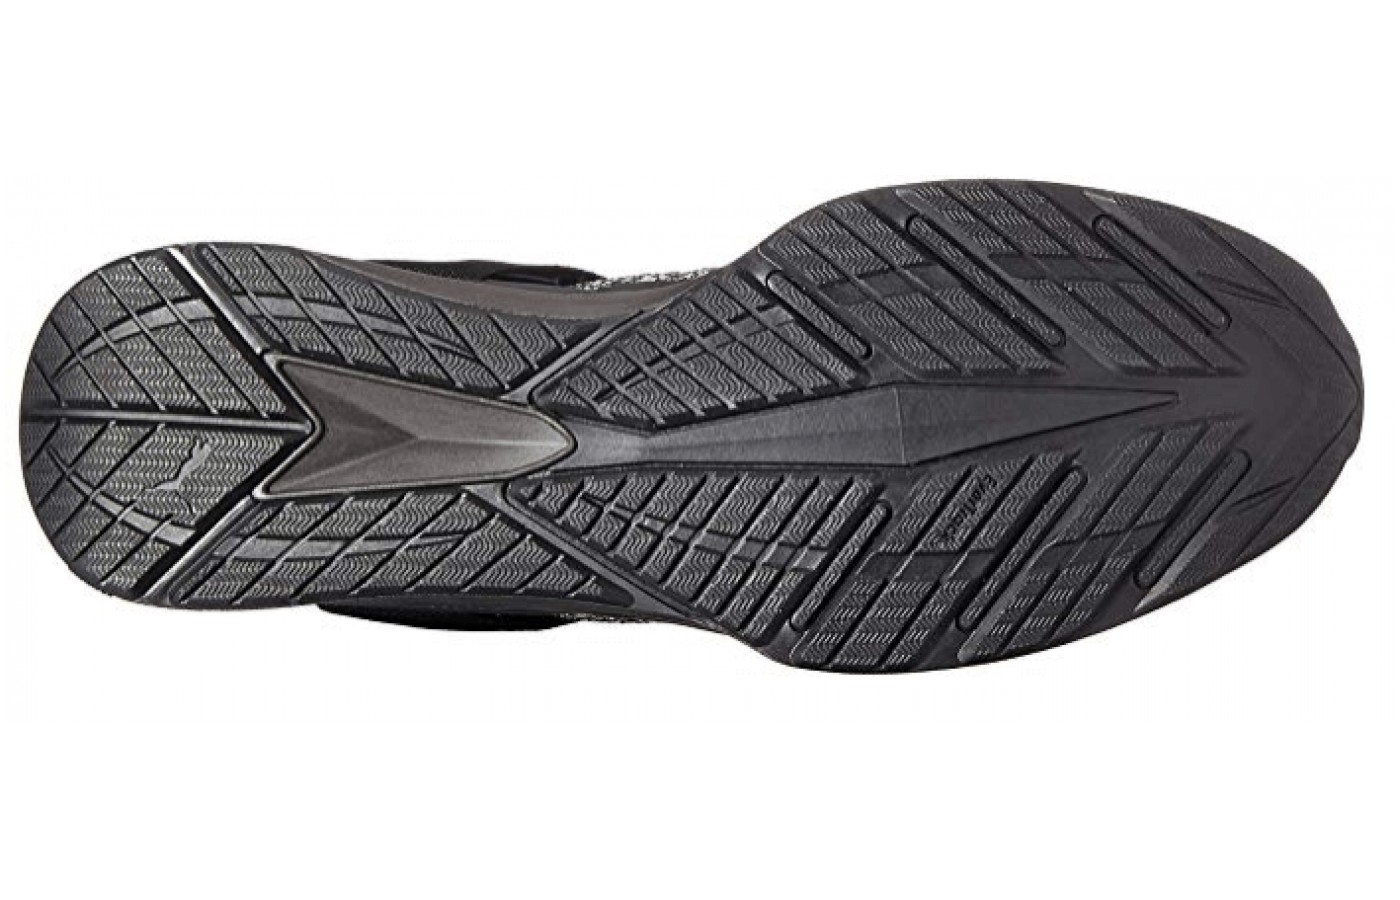 The tread offers traction even on wet surfaces.